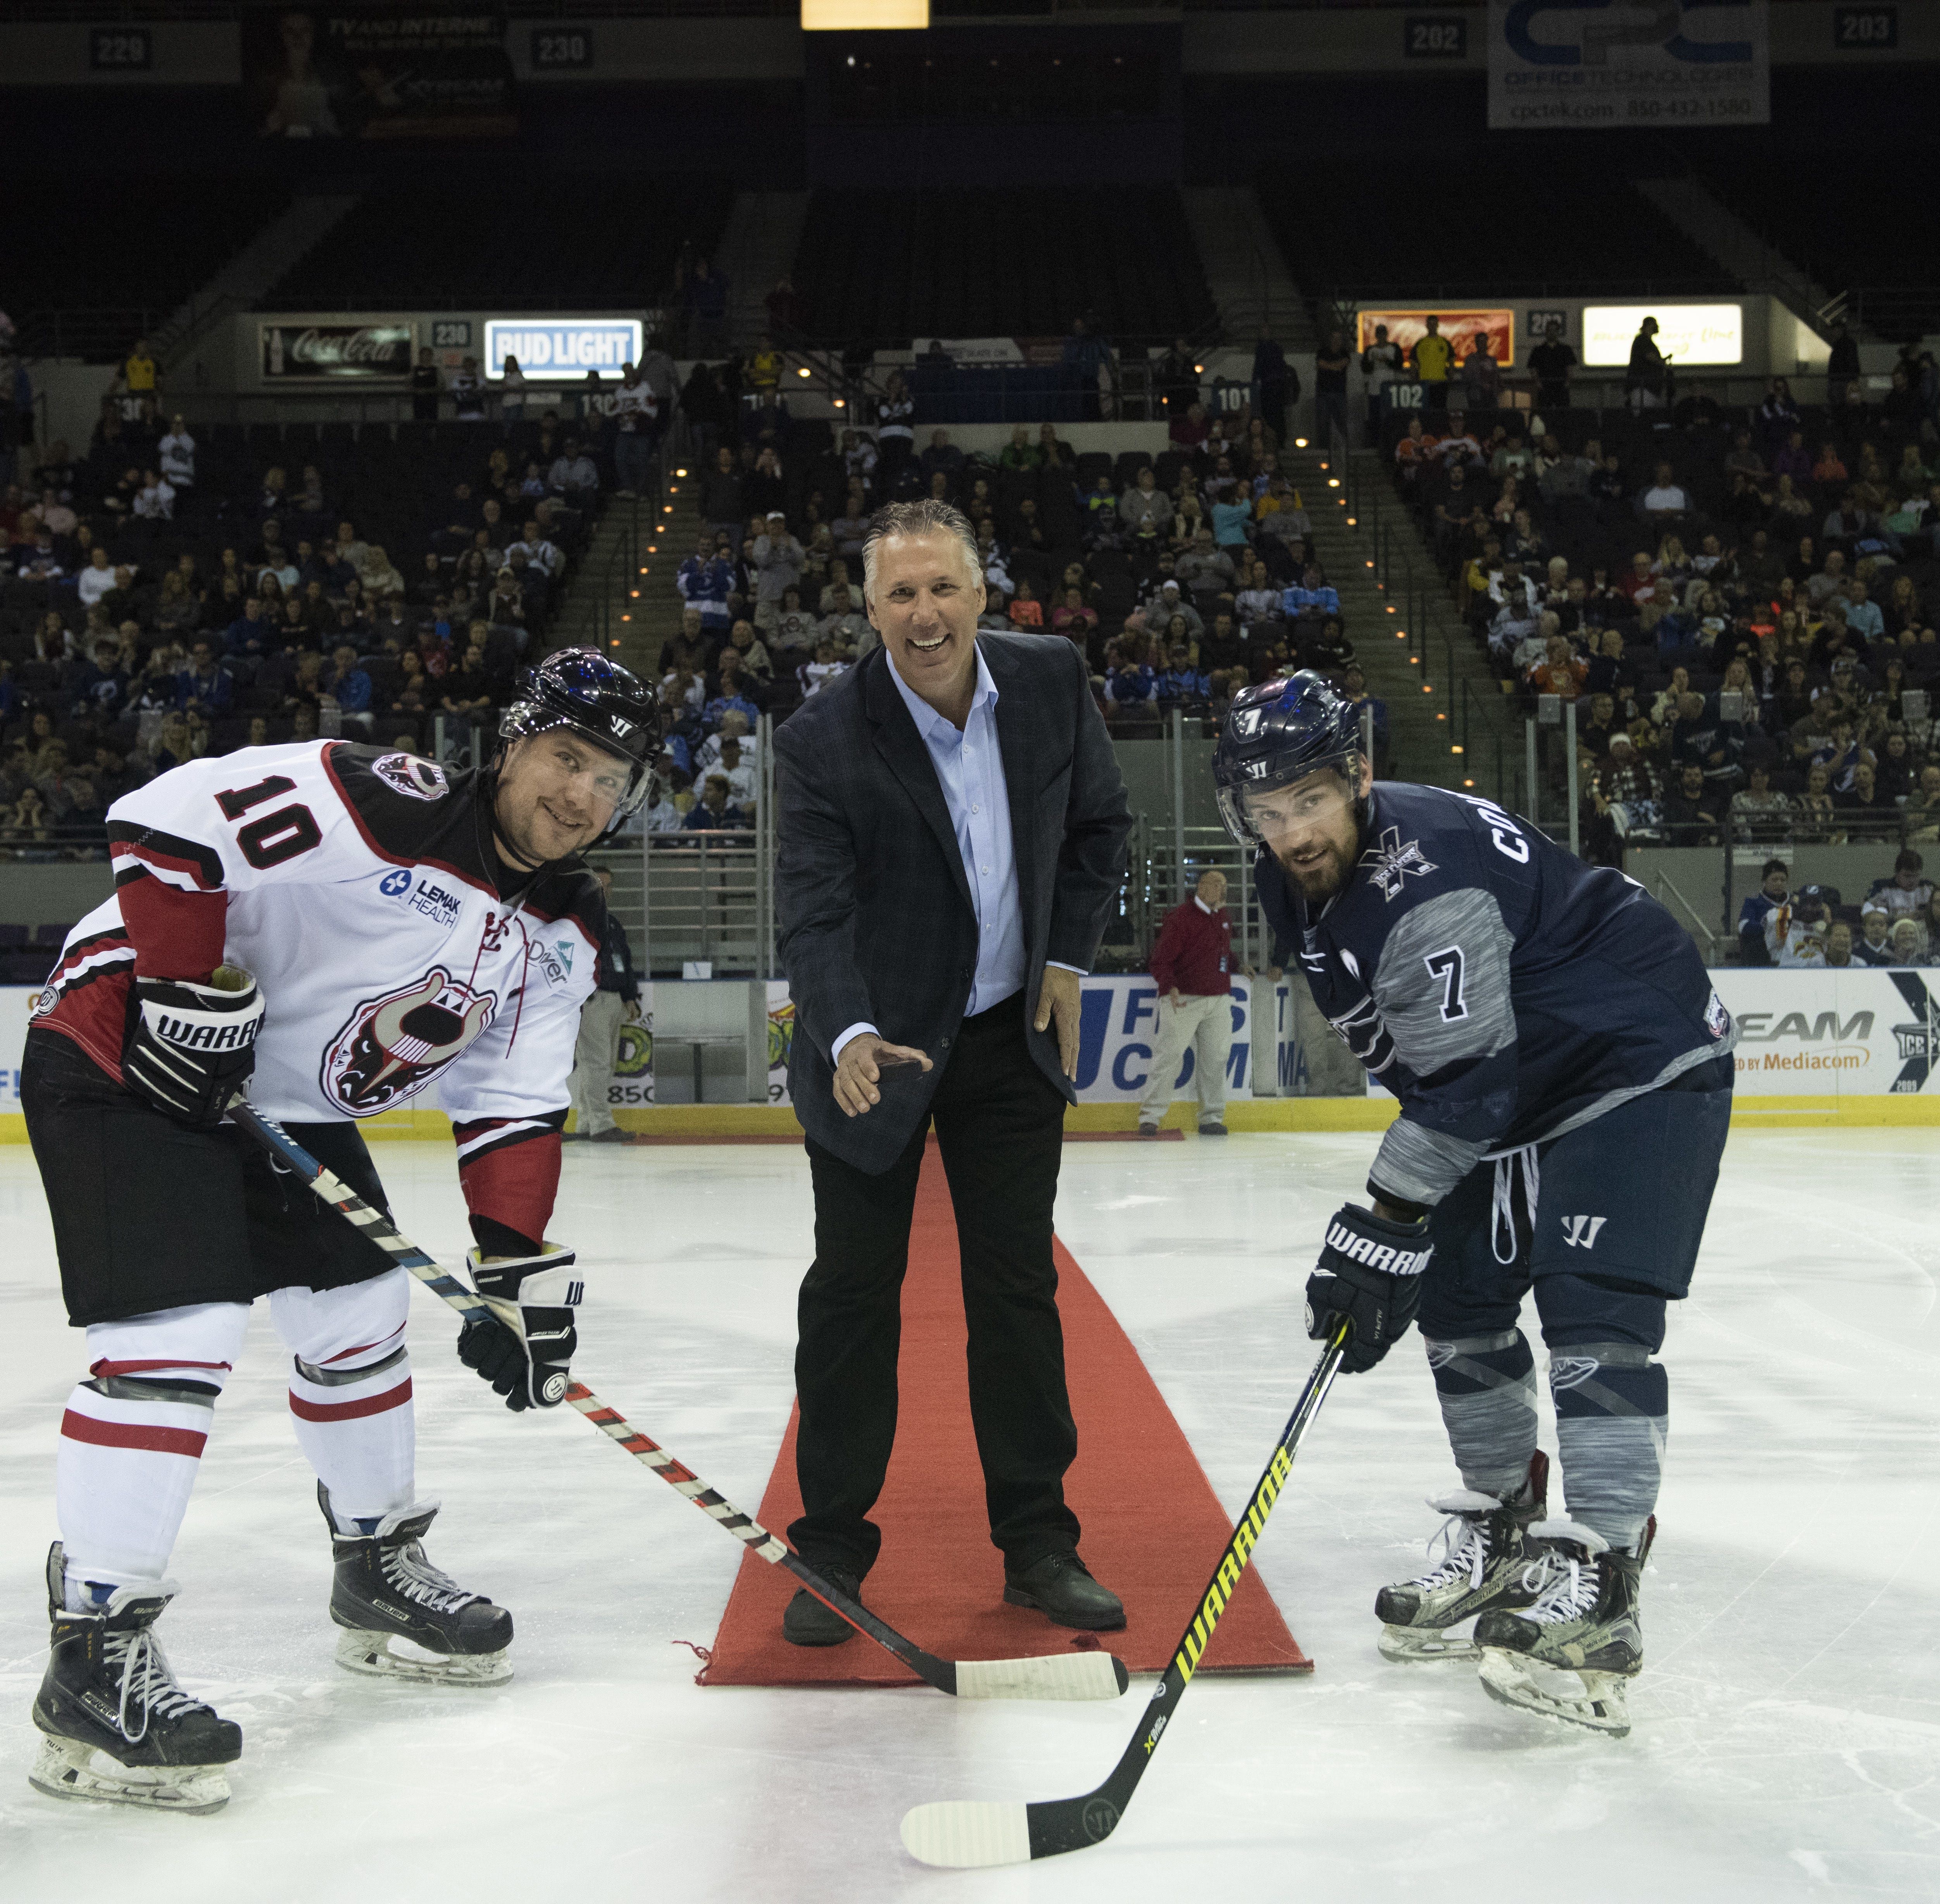 Hockey Hall of Famer Andreychuk part of Tampa Bay Lightning's Pensacola impact